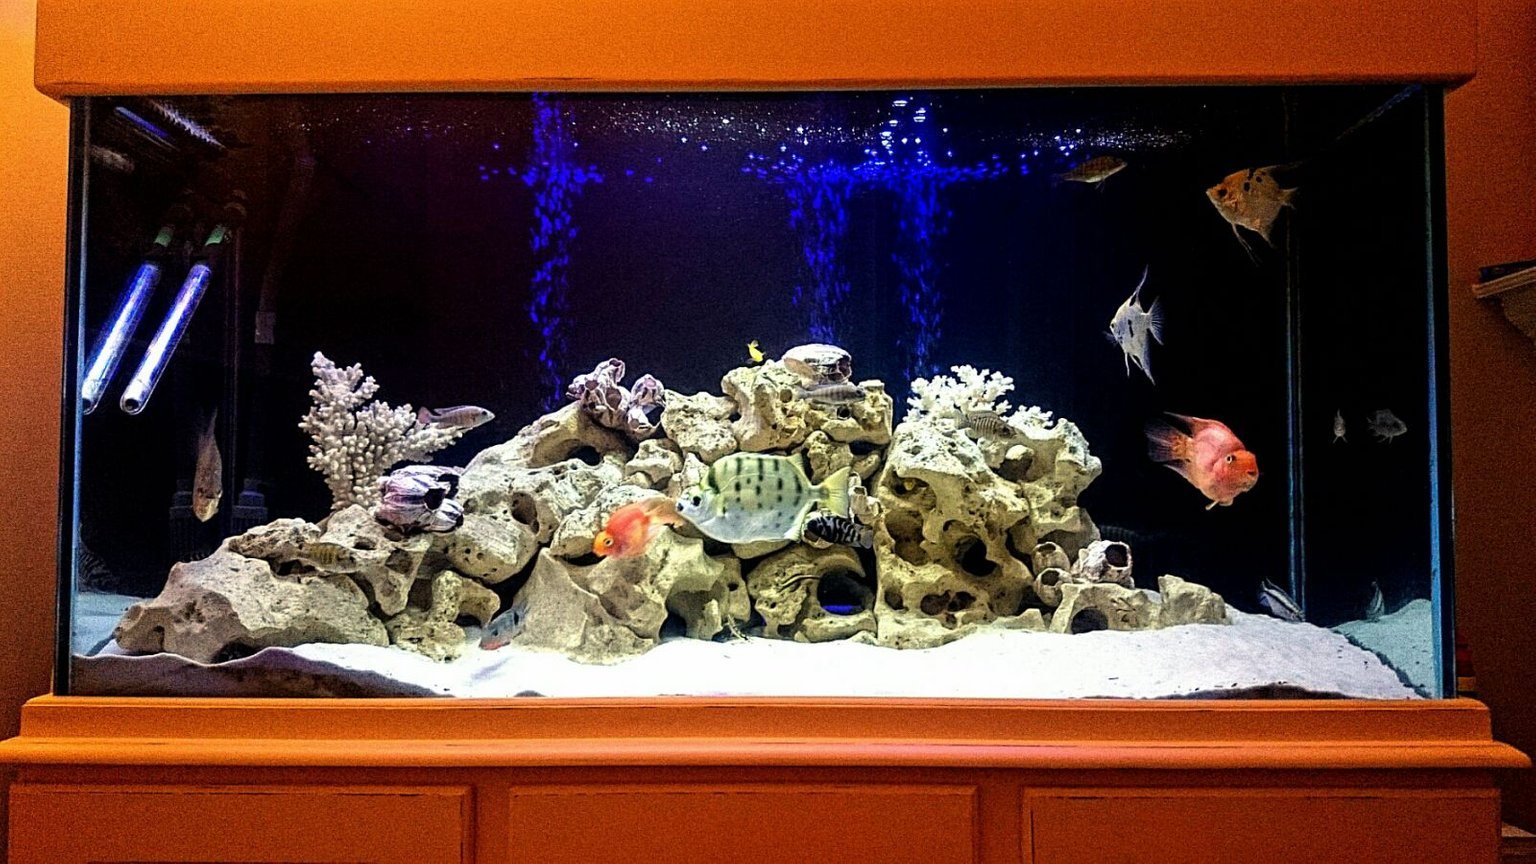 fish tank picture - Better quality picture to swap with original upload.